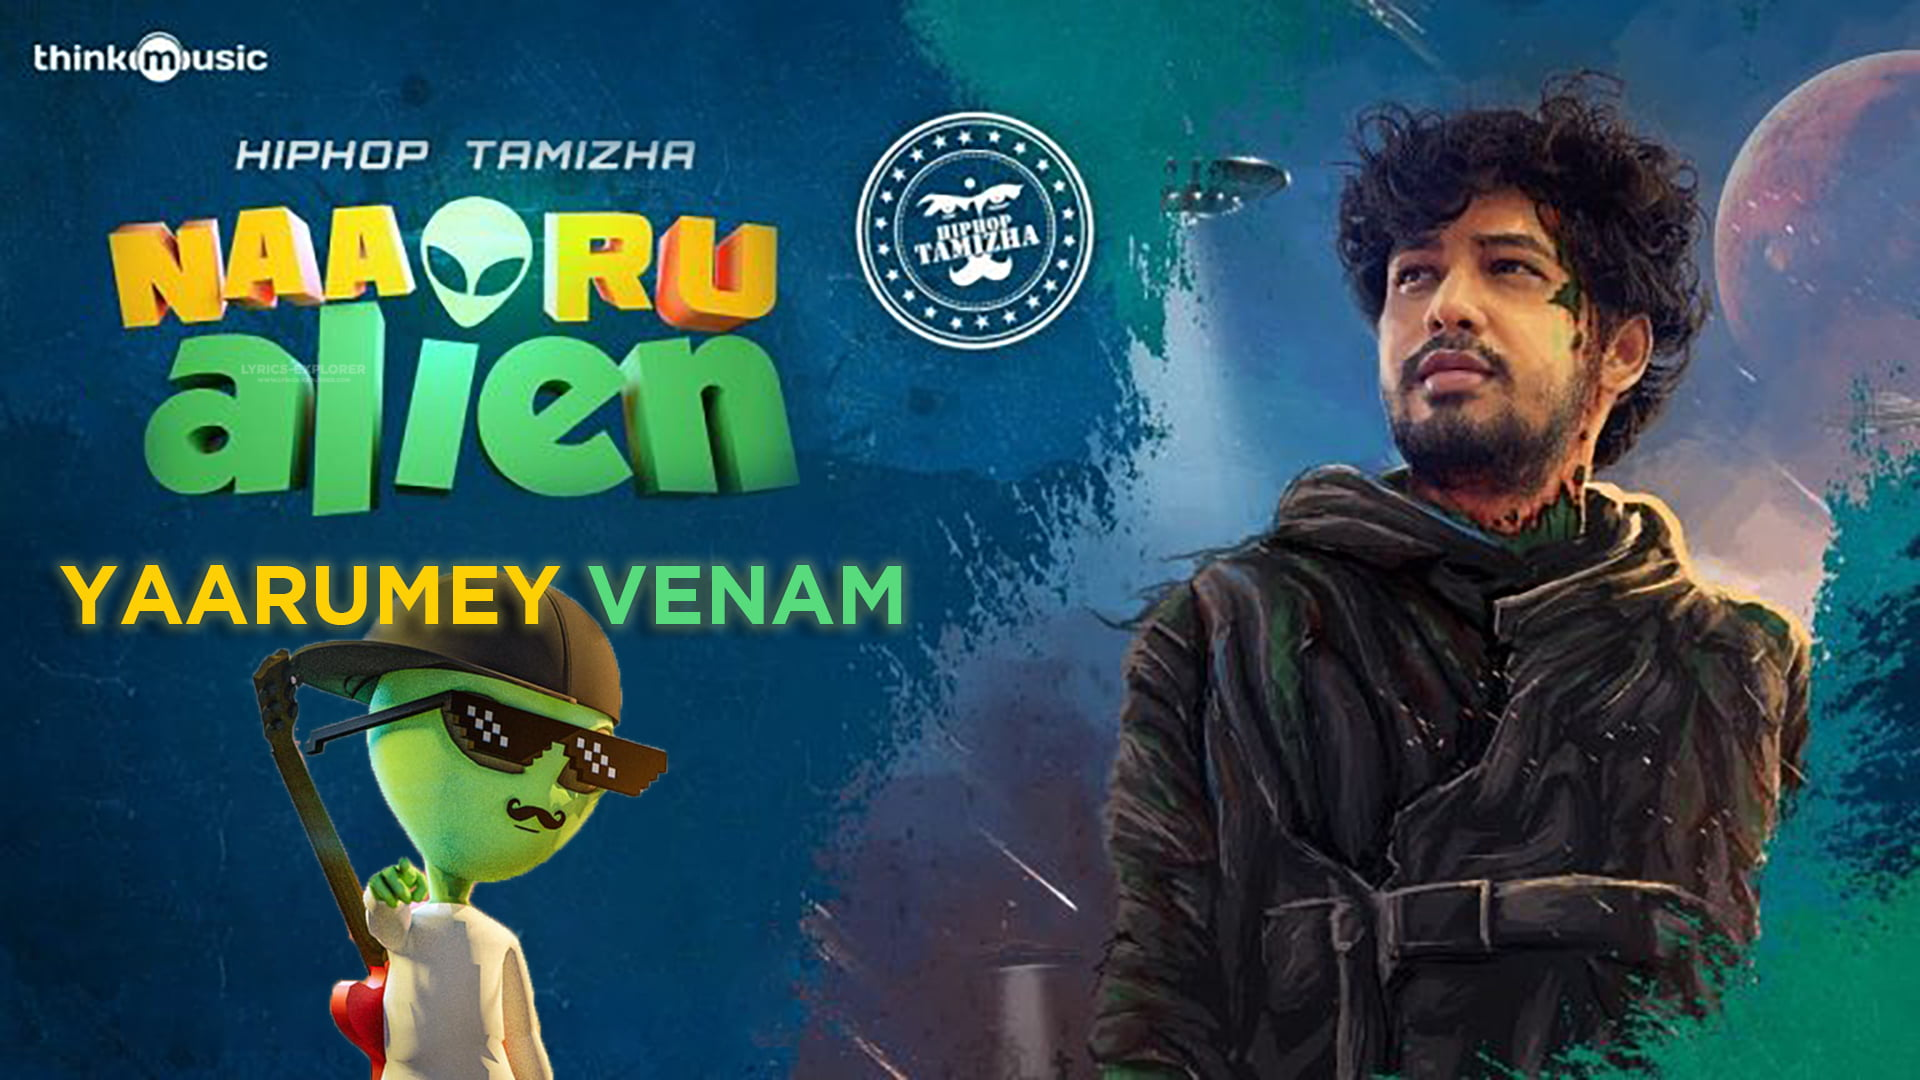 You are currently viewing Yaarumey Venam song lyrics free Naa Oru Alien Hiphop Tamizha